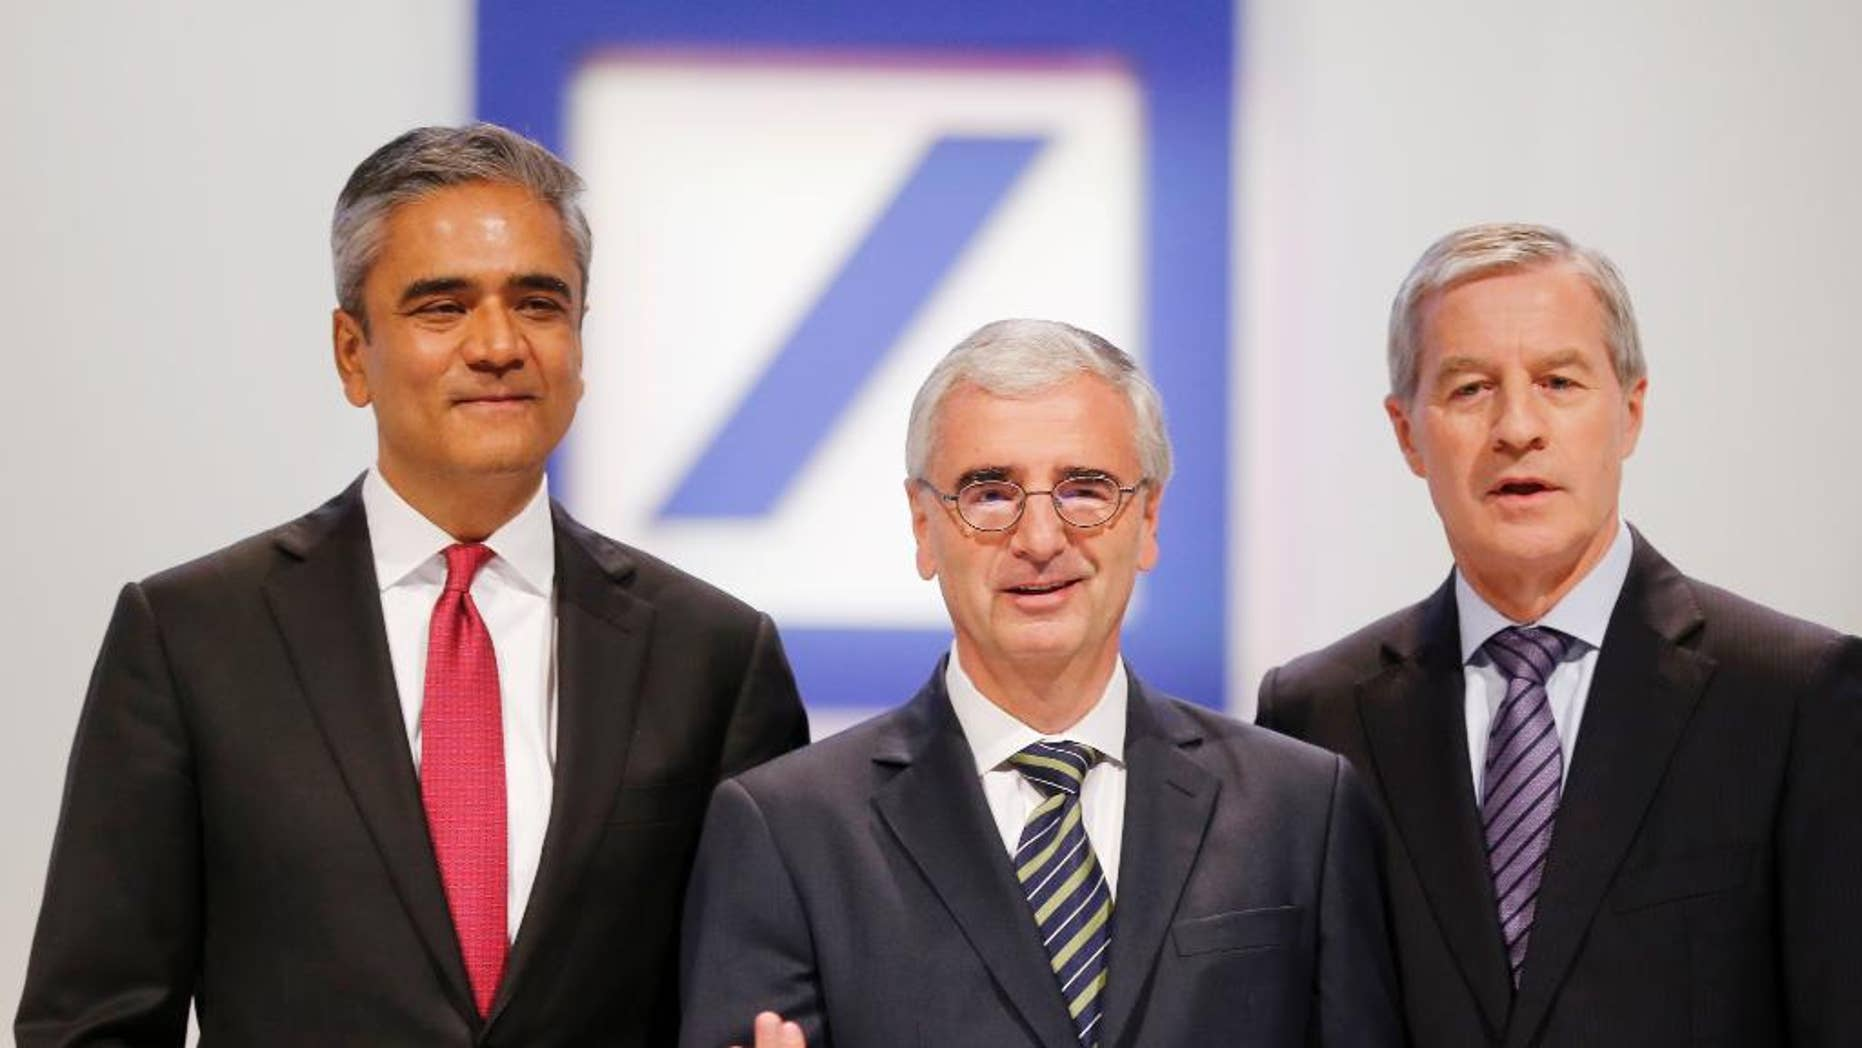 FILE - In this May 22, 2014 file photo Co-CEOs of Deutsche Bank Anshu Jain, left, and Juergen Fitschen, right, and the head of supervisory board Paul Achleitner pose for photographers at the beginning of the annual shareholders meeting in Frankfurt, Germany. Deutsche Bank said Sunday, June 7, 2015 that Jain and Fitschen will resign.  John Cryan will succeed Jain in July 2015 and will become the sole CEO in May 2016.  (AP Photo/Michael Probst, file)